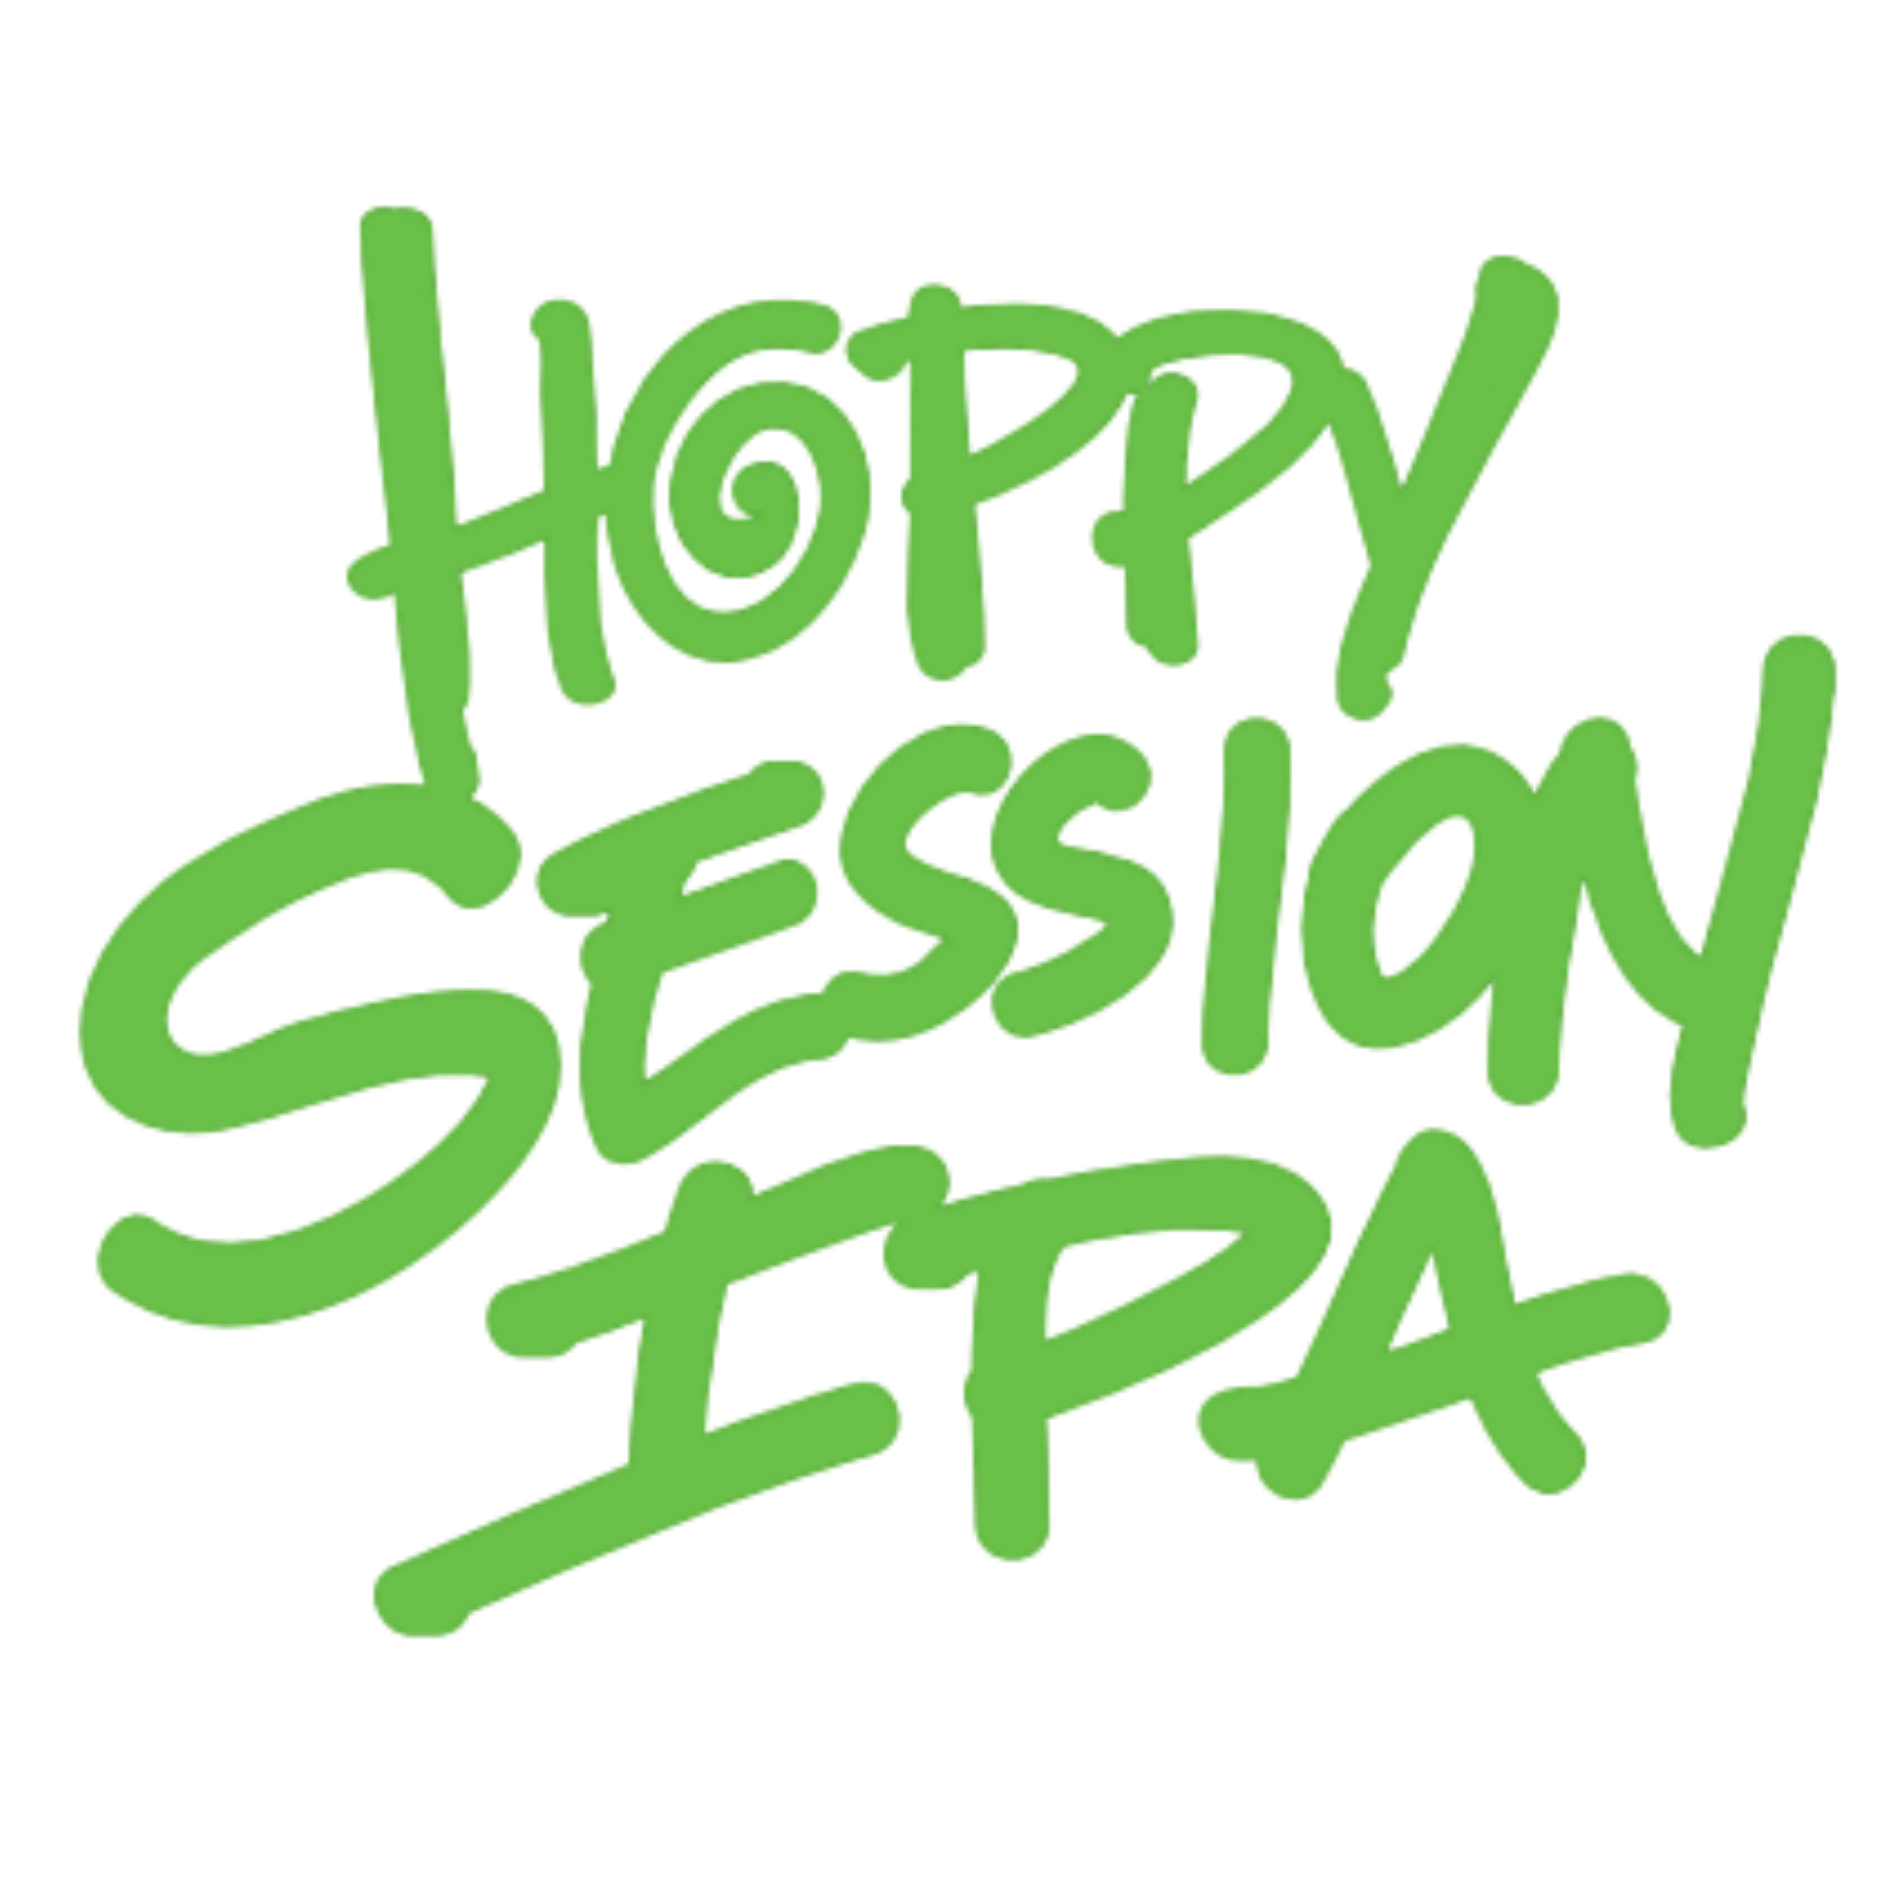 Hop For fun - Hoppy Session Ipa